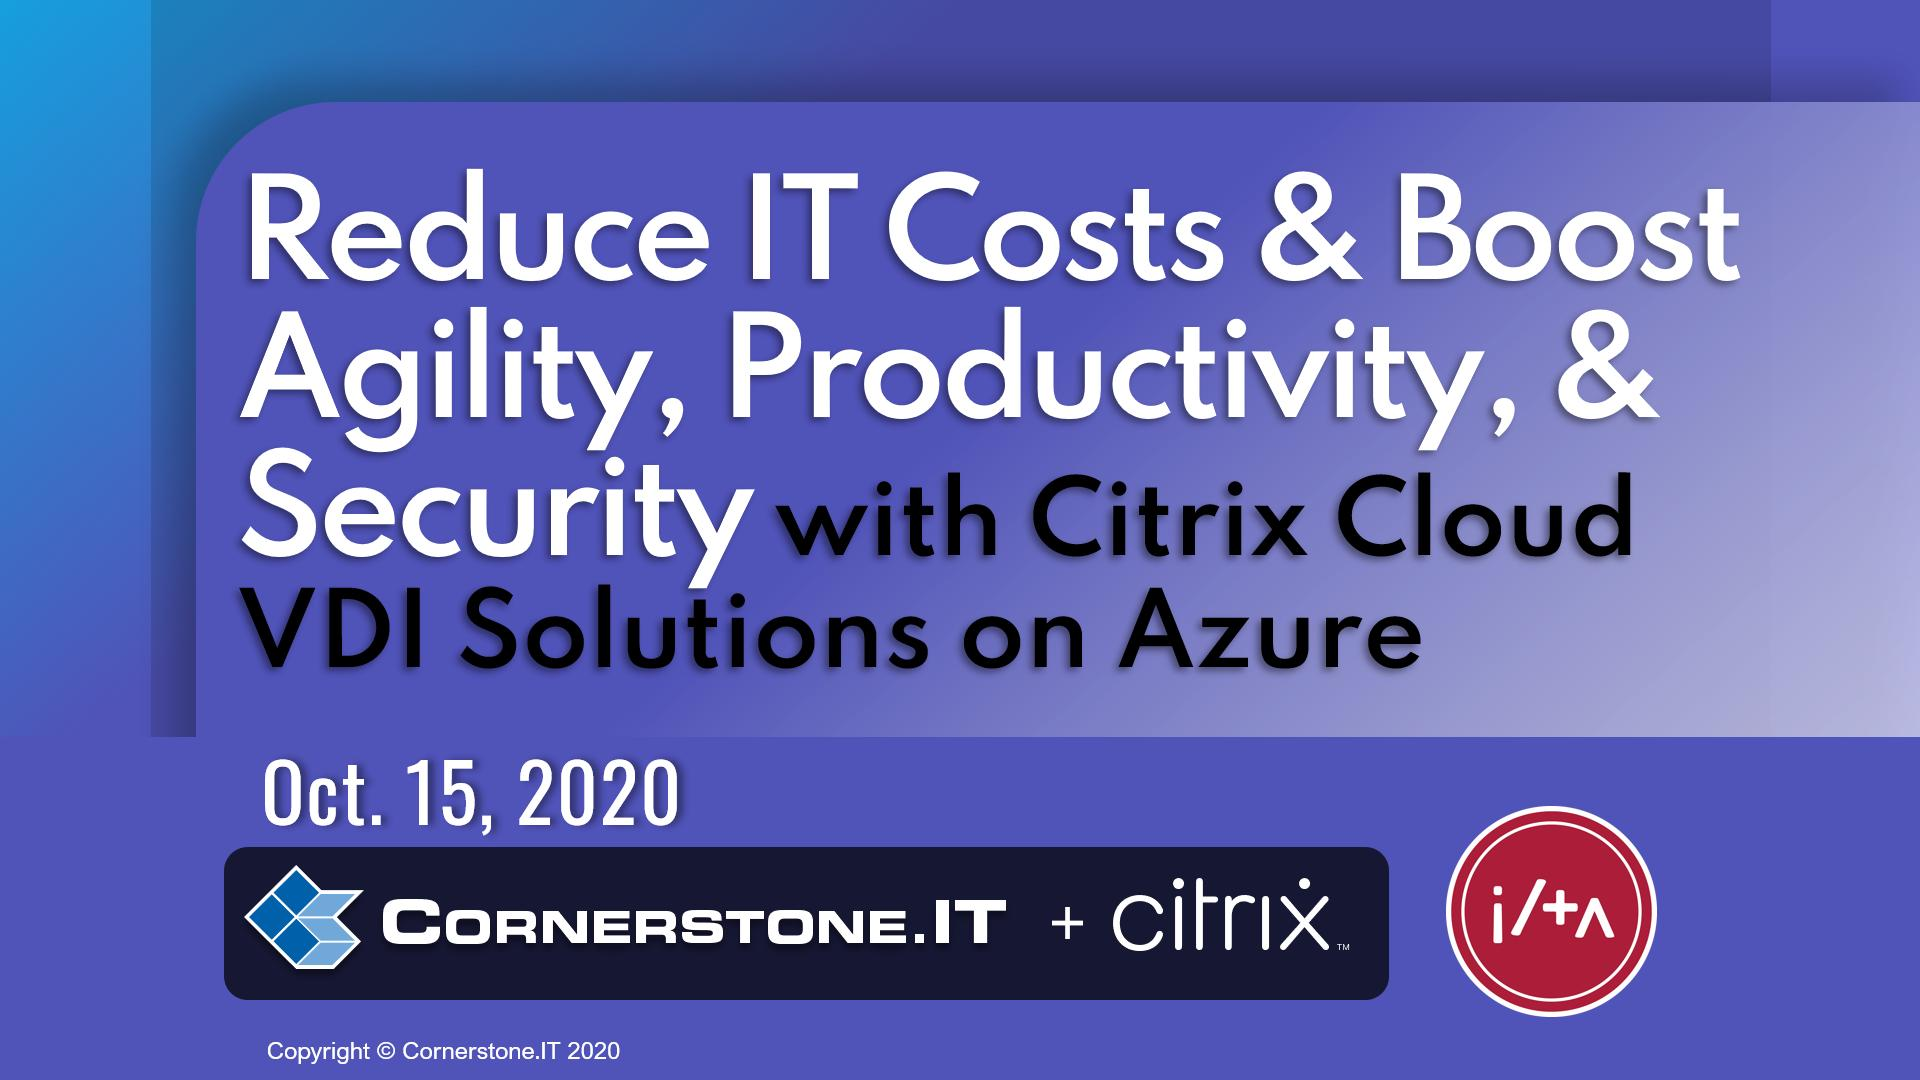 Reduce IT Costs Boost Agility, Productivity, & Security with Citrix Cloud VDI Solutions on MS Azure